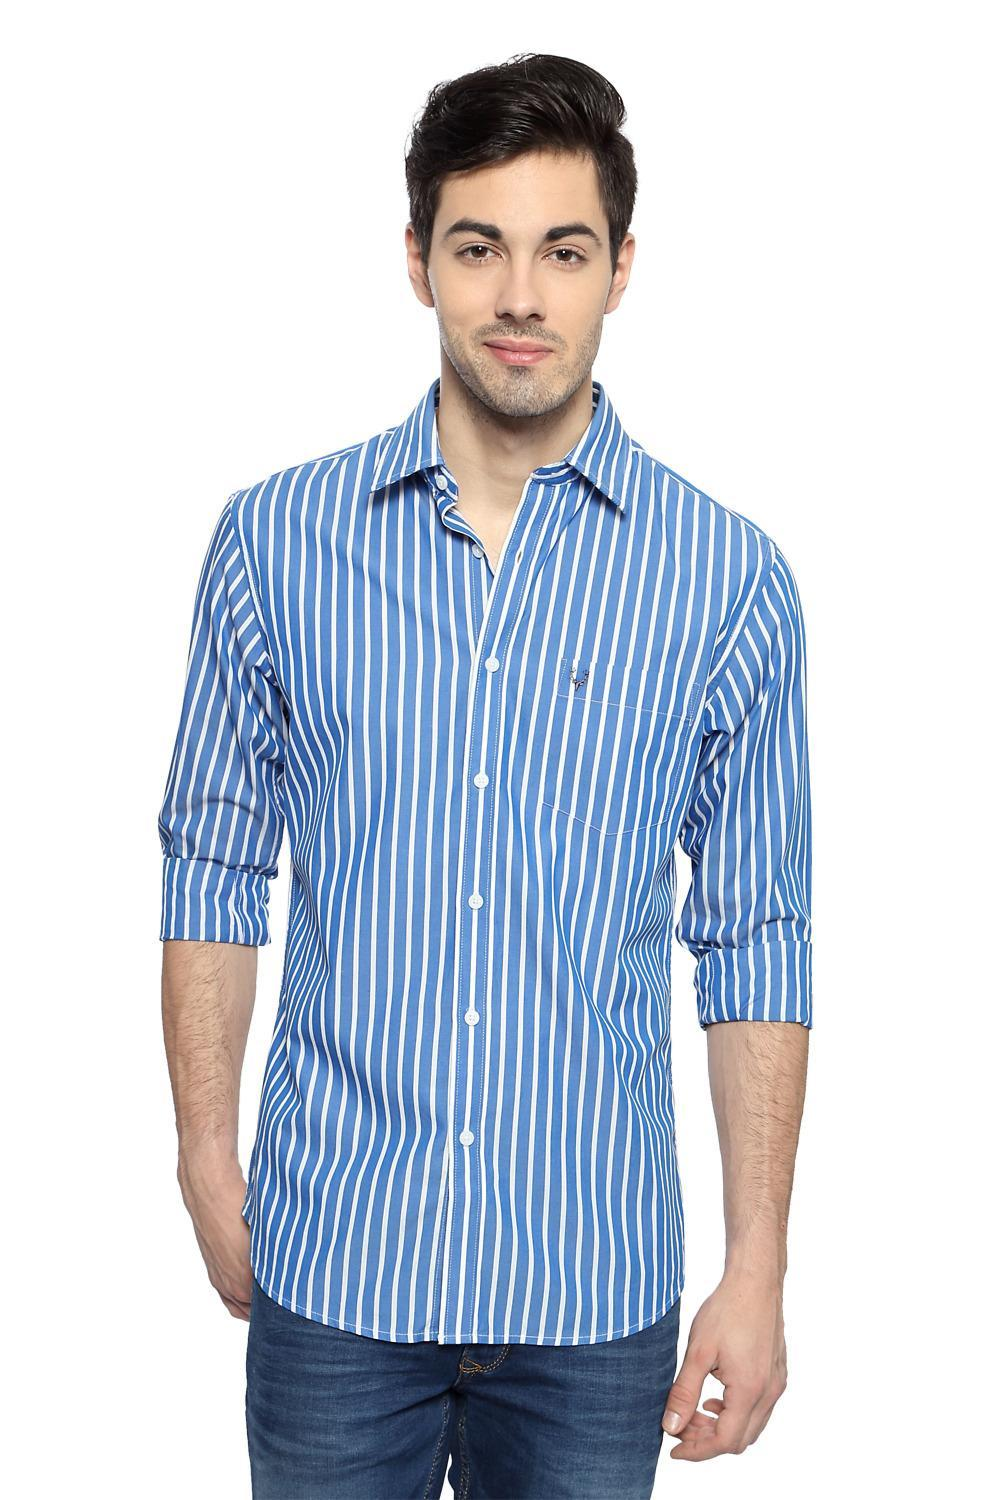 31b88738b26c3d Allen Solly Shirts, Blue Striped Semi Formal Shirt for Men at Allensolly.com